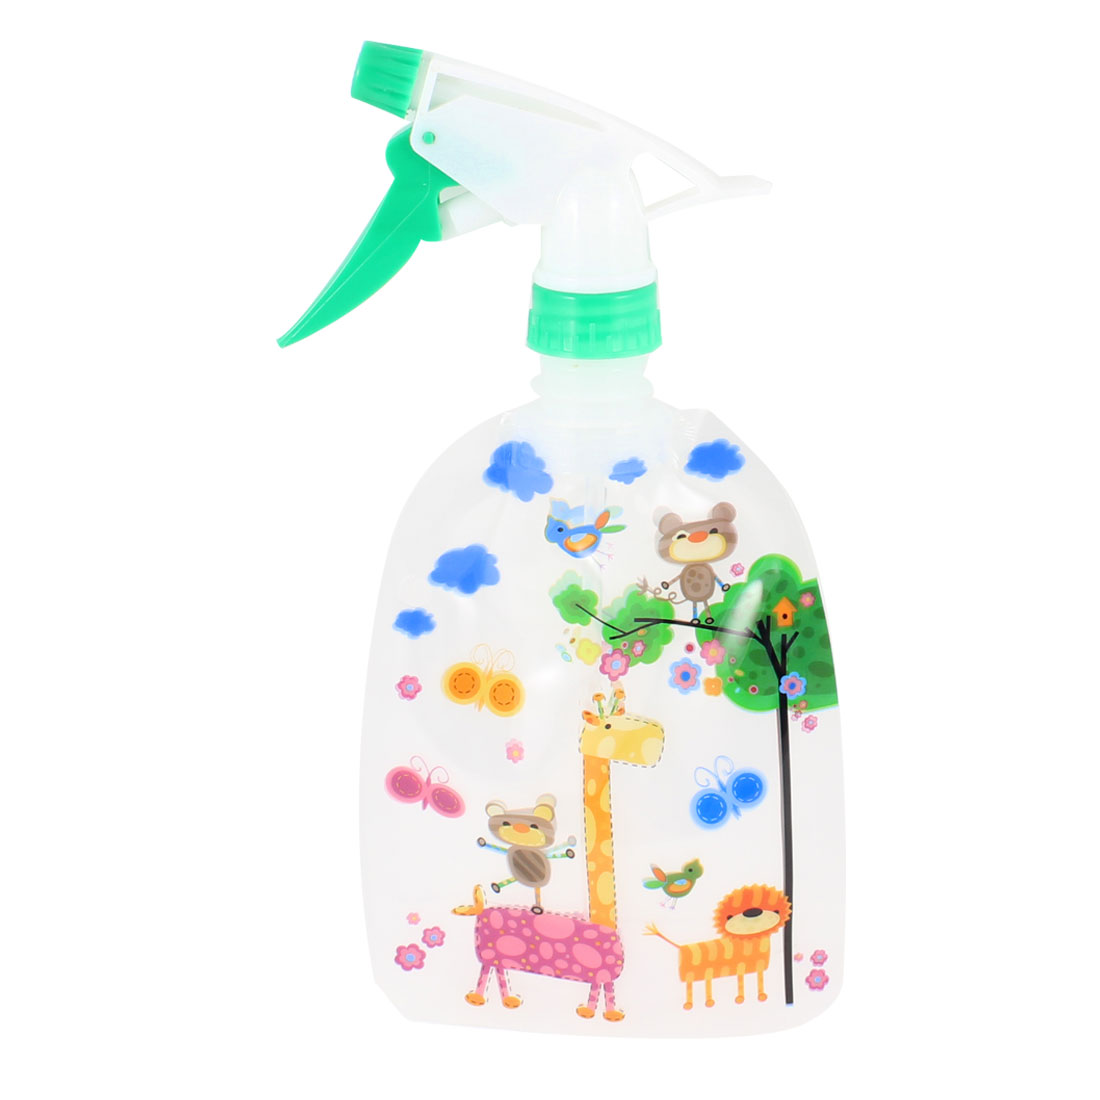 Giraffe Print Standable Plastic Trigger Flower Spray Bottle 300ml Green Orange